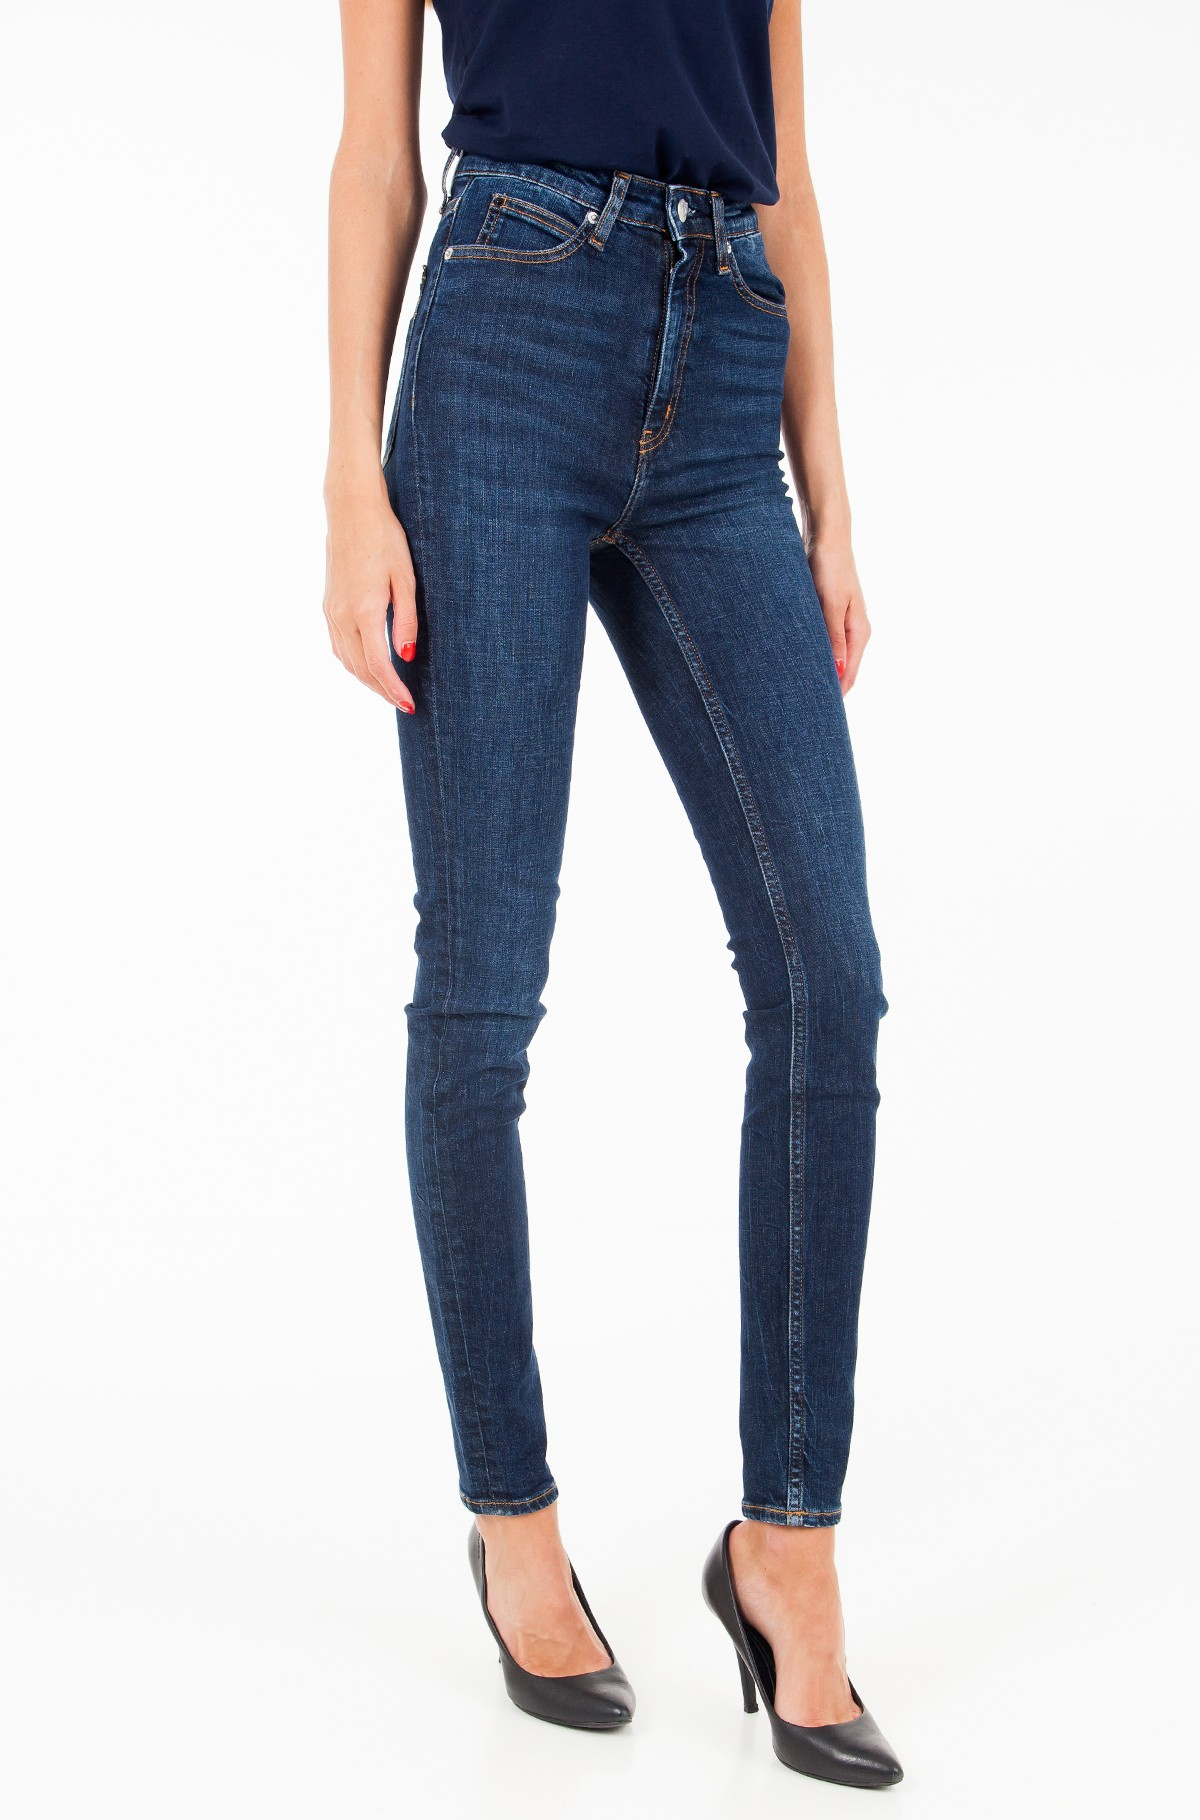 Džinsinės kelnės CKJ 010: High Rise Skinny (West Cut)-full-1